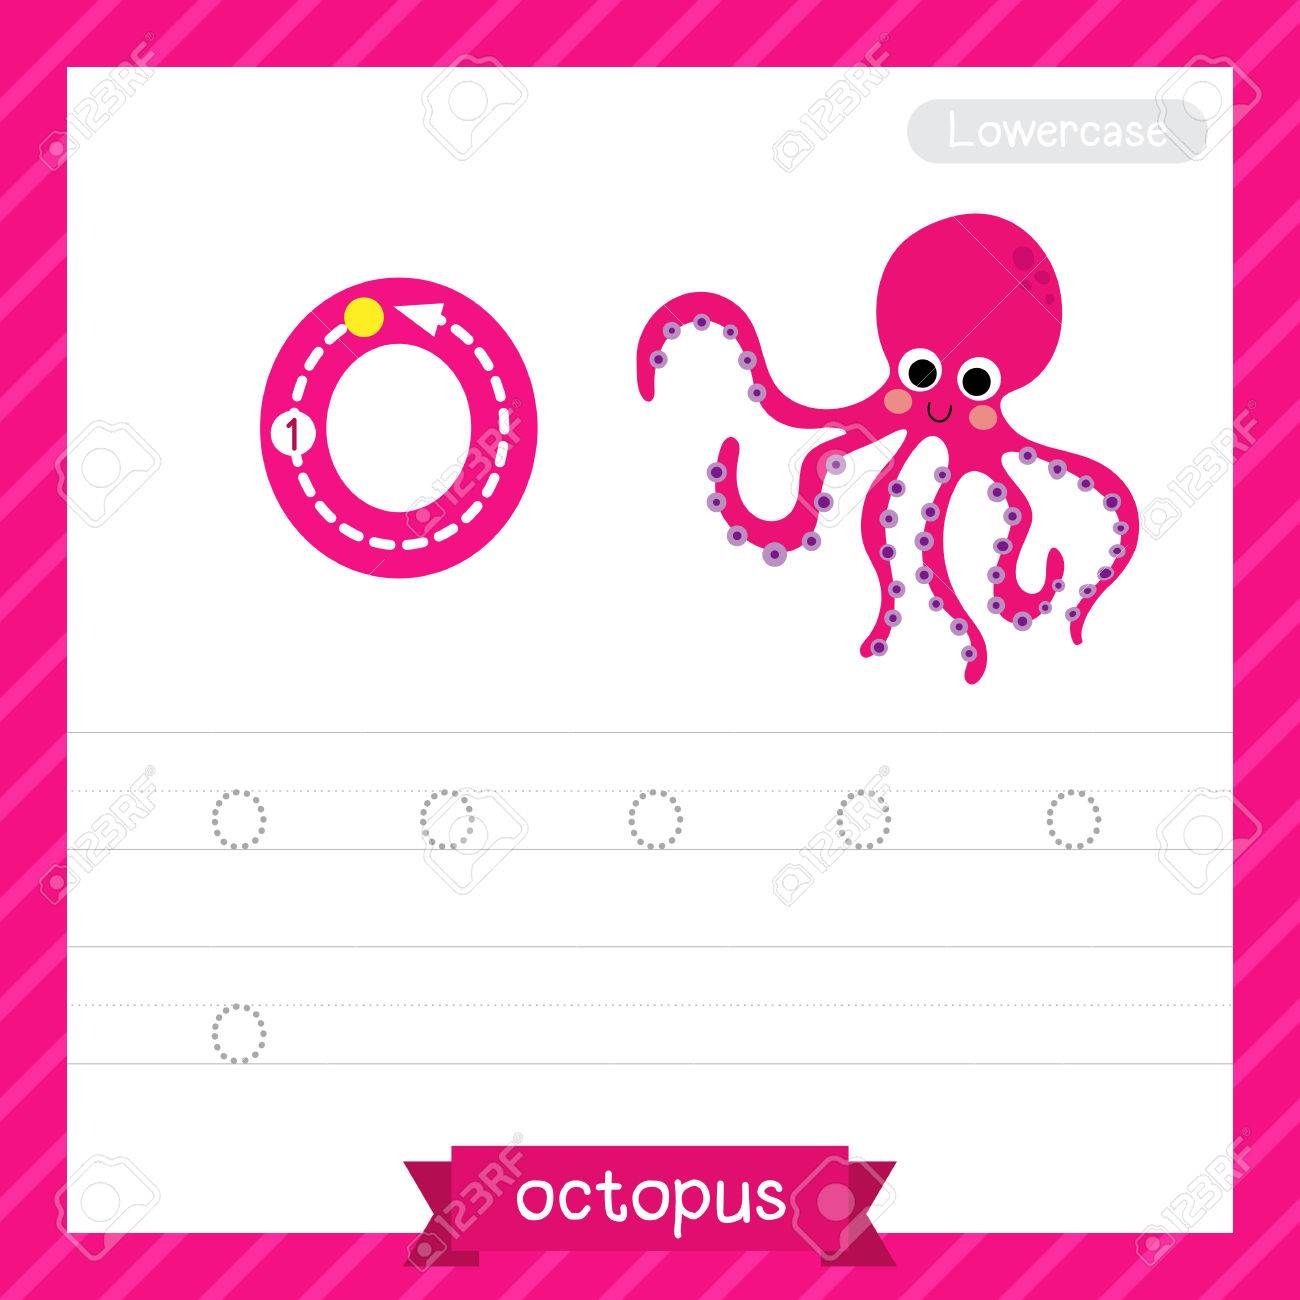 Letter O Lowercase Tracing Practice Worksheet With Octopus For ...